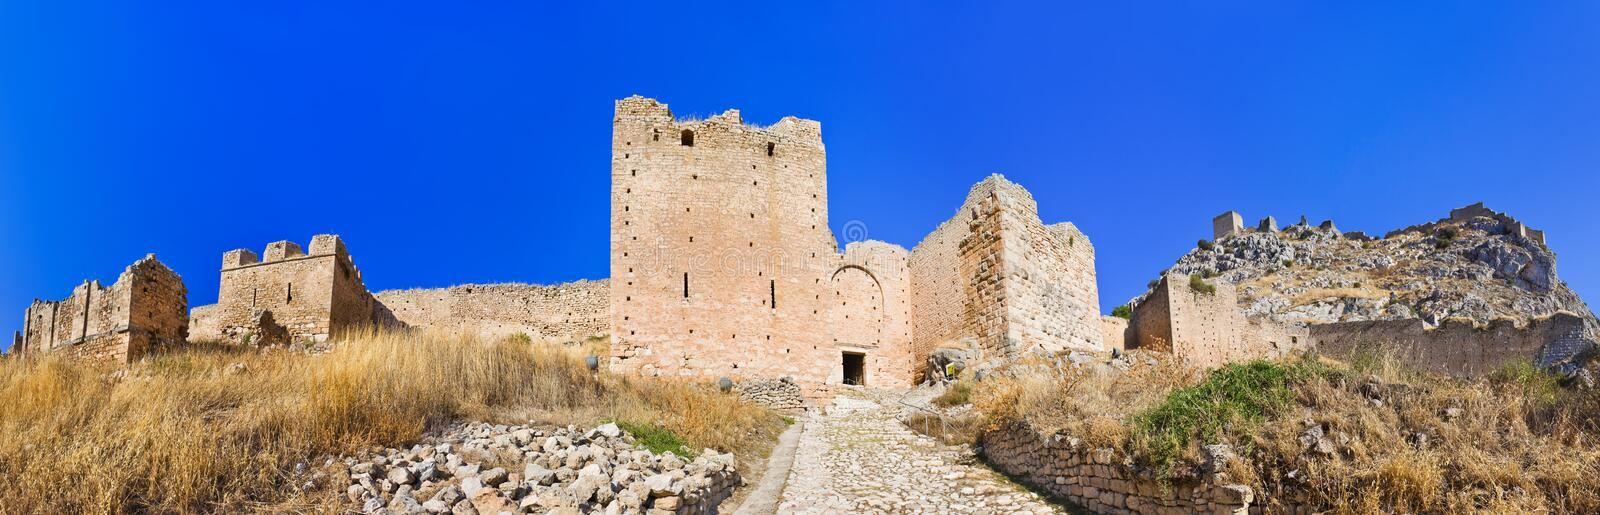 Download Old Fort In Corinth, Greece Stock Image - Image: 24617235